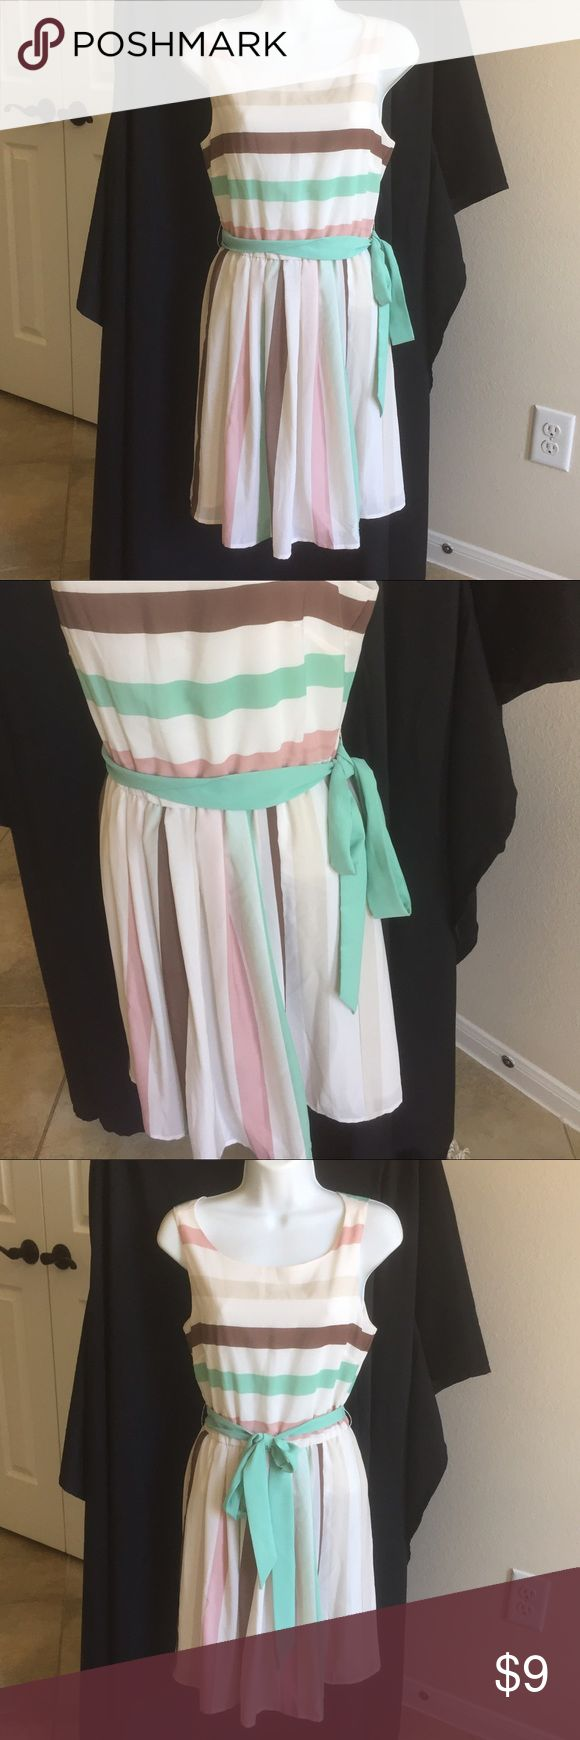 Never worn American Rag Spring Dress I purchased this dress to use for college interviews a few years ago but hit a late growth spurt and couldn't wear it! This cream dress is perfect for spring with it's light and airy fabric. It features a multitude of pastel colors and a built in slip. The mint fabric belt can be tied  in the front, back, or on the side. The zipper goes all the way to mid back for ease in dressing and has a hook at the top to keep it fastened securely on. American Rag…